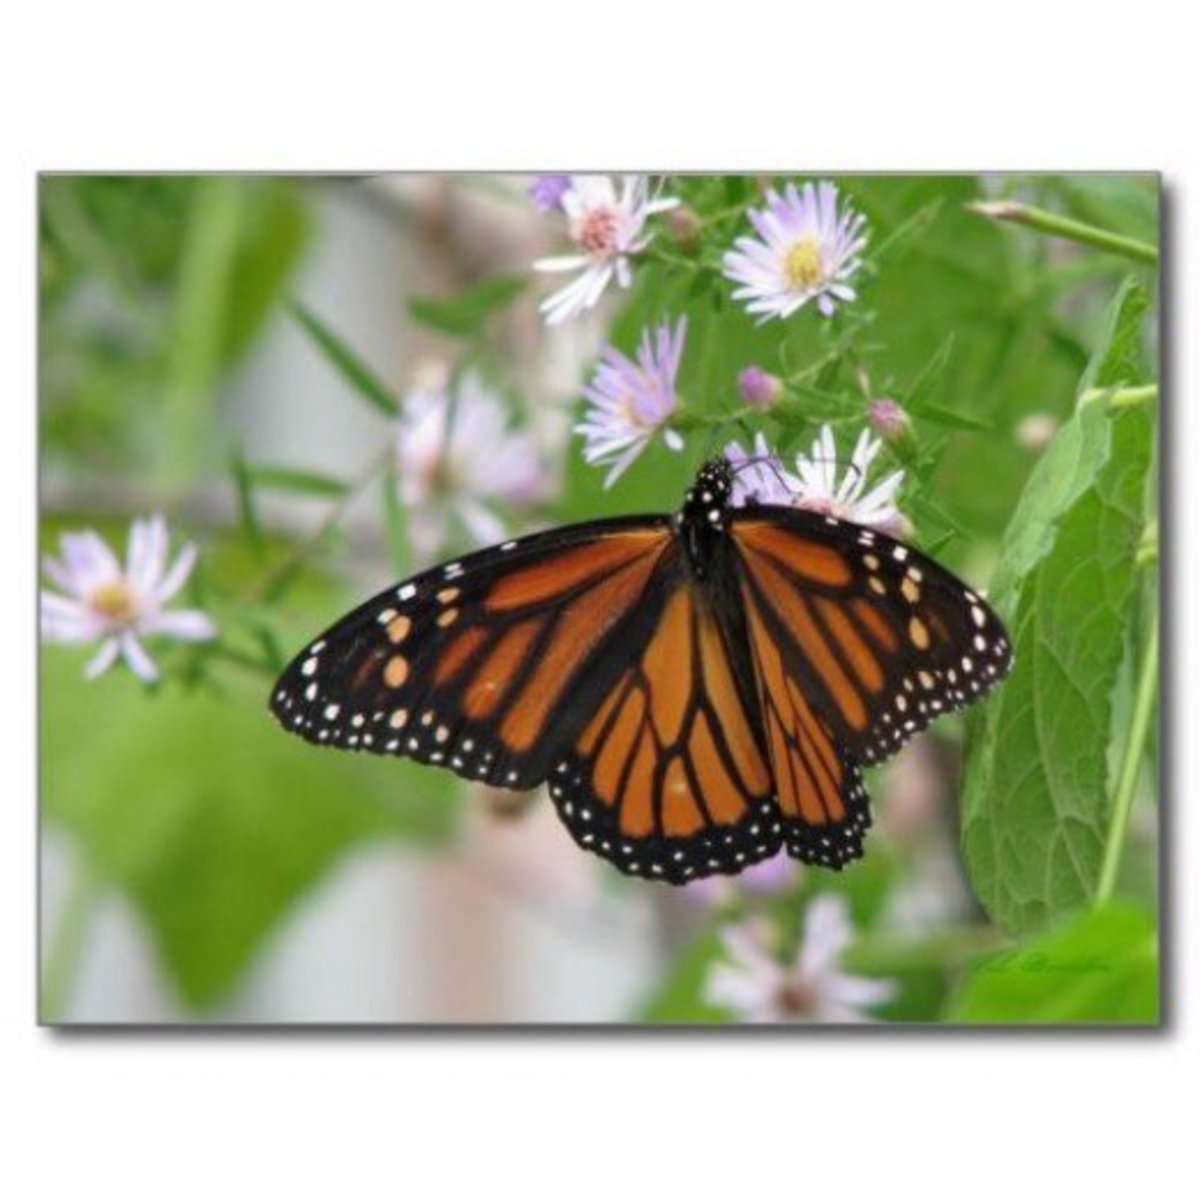 Monarchs flock to wild blue asters whose nectar sustains them on their trek south to their wintering grounds in Mexico.